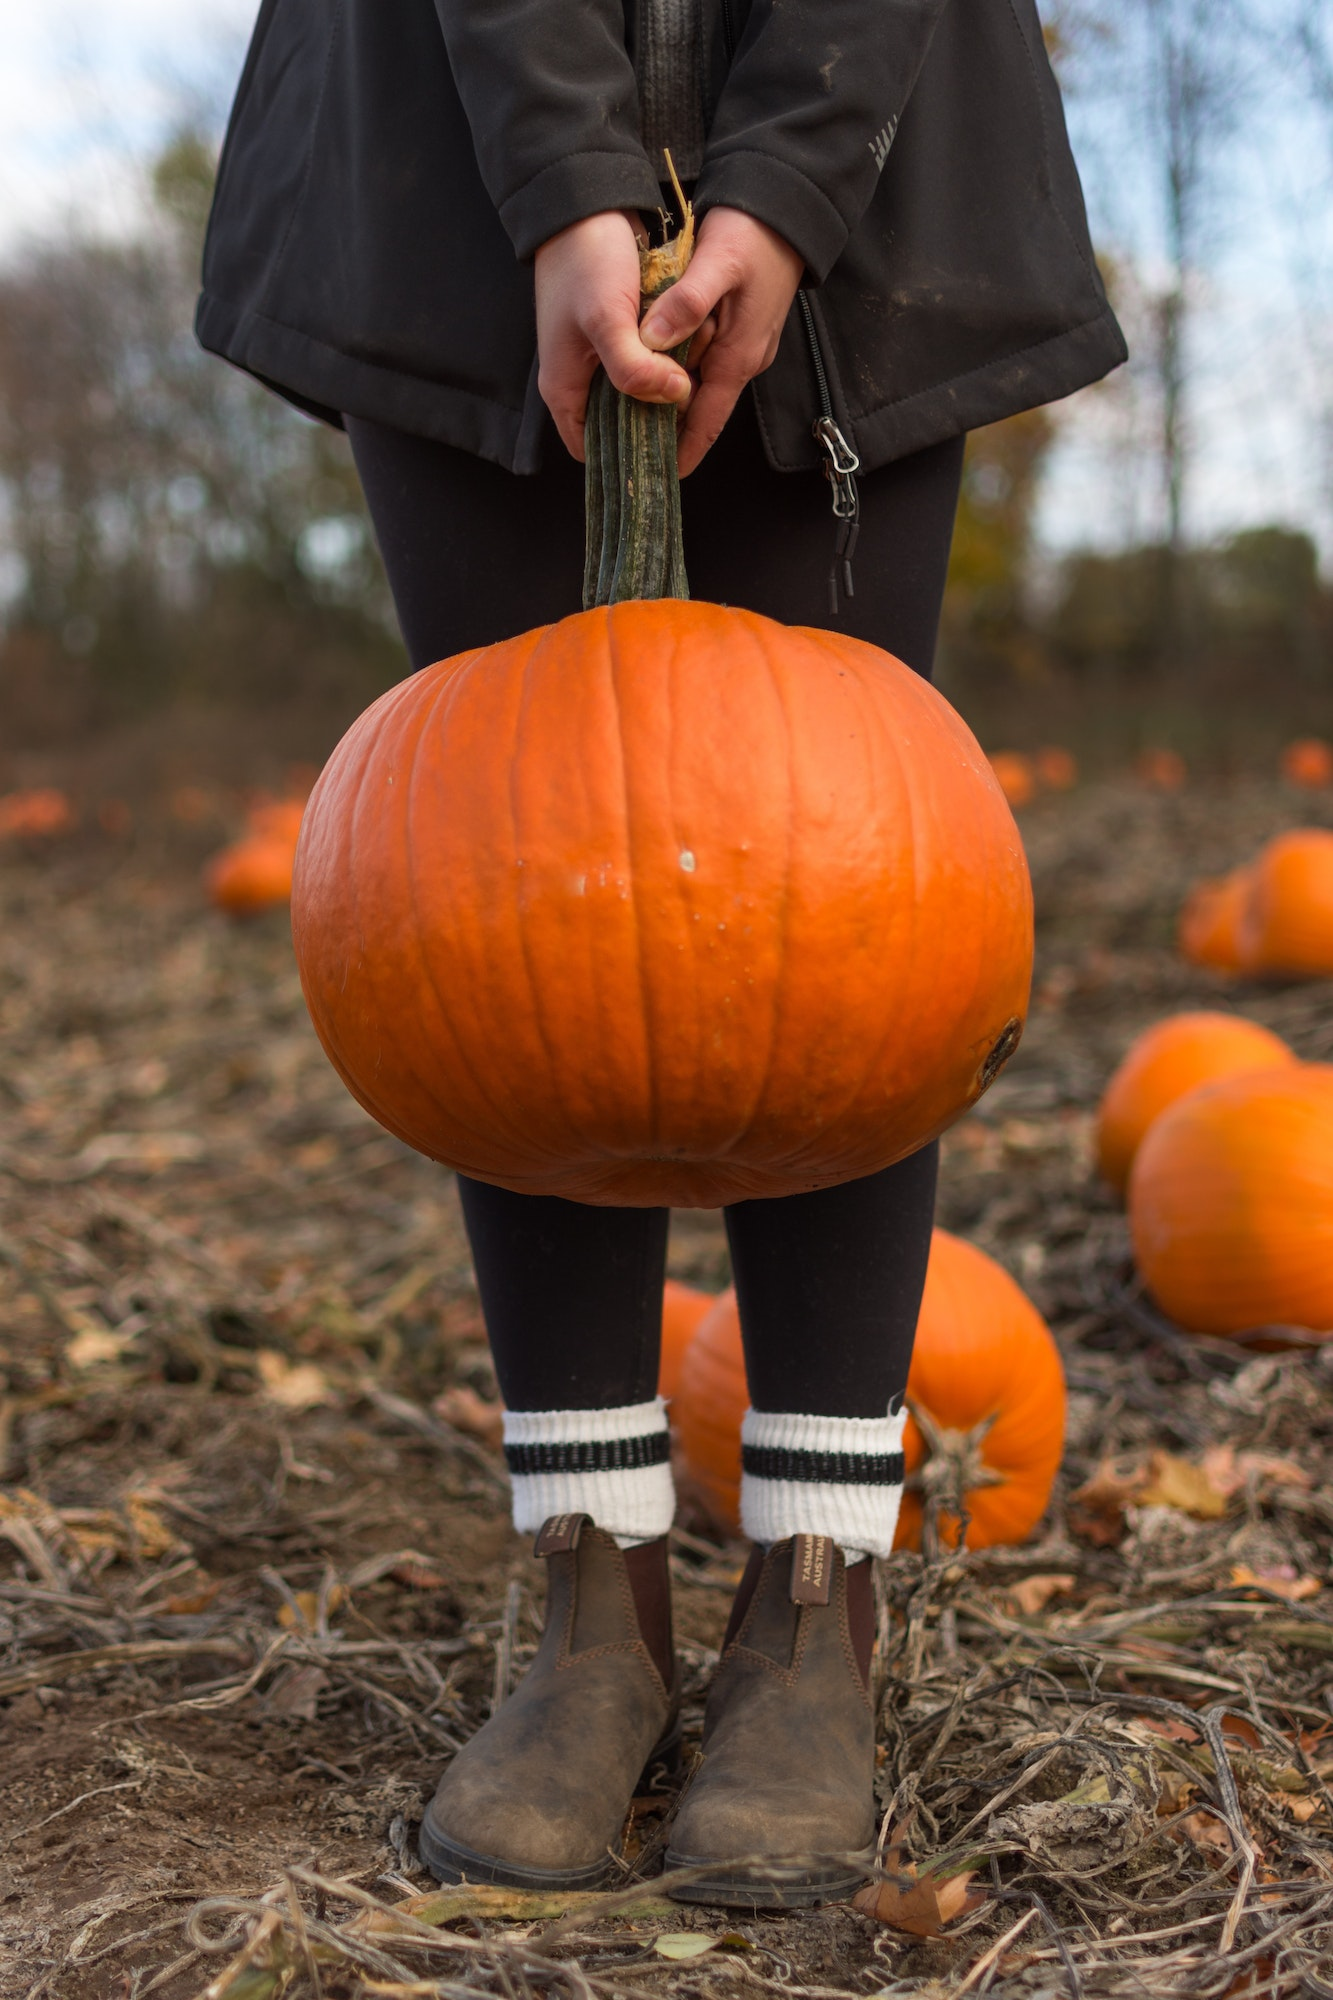 May contain: pumpkin, food, plant, vegetable, shoe, clothing, apparel, footwear, human, and person